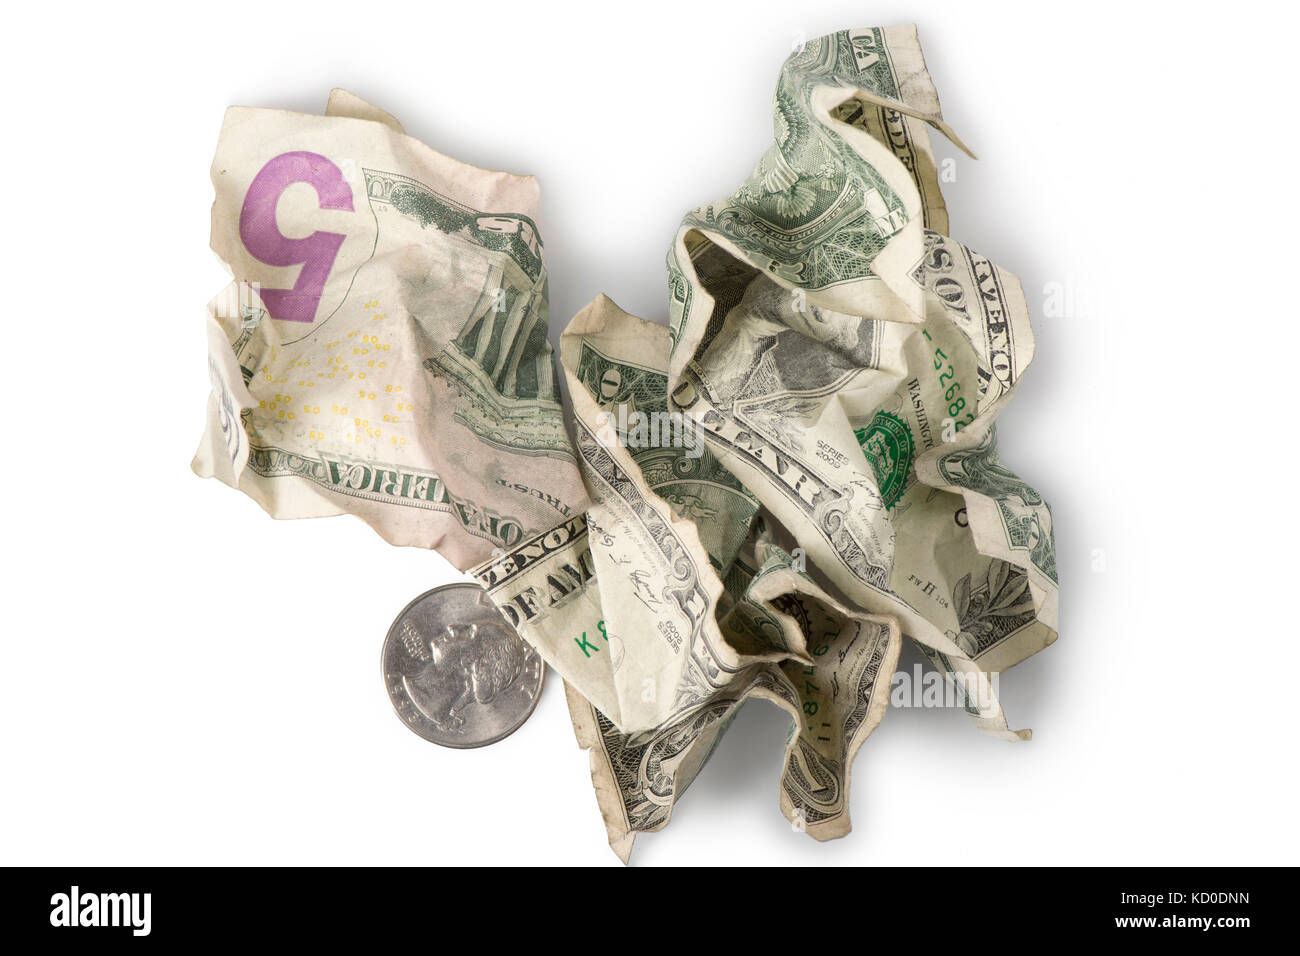 Wrinkled and crumpled dollar bills and a quarter adding up to $7.25, the current (as of 2016) U.S. Federal Minimum - Stock Image